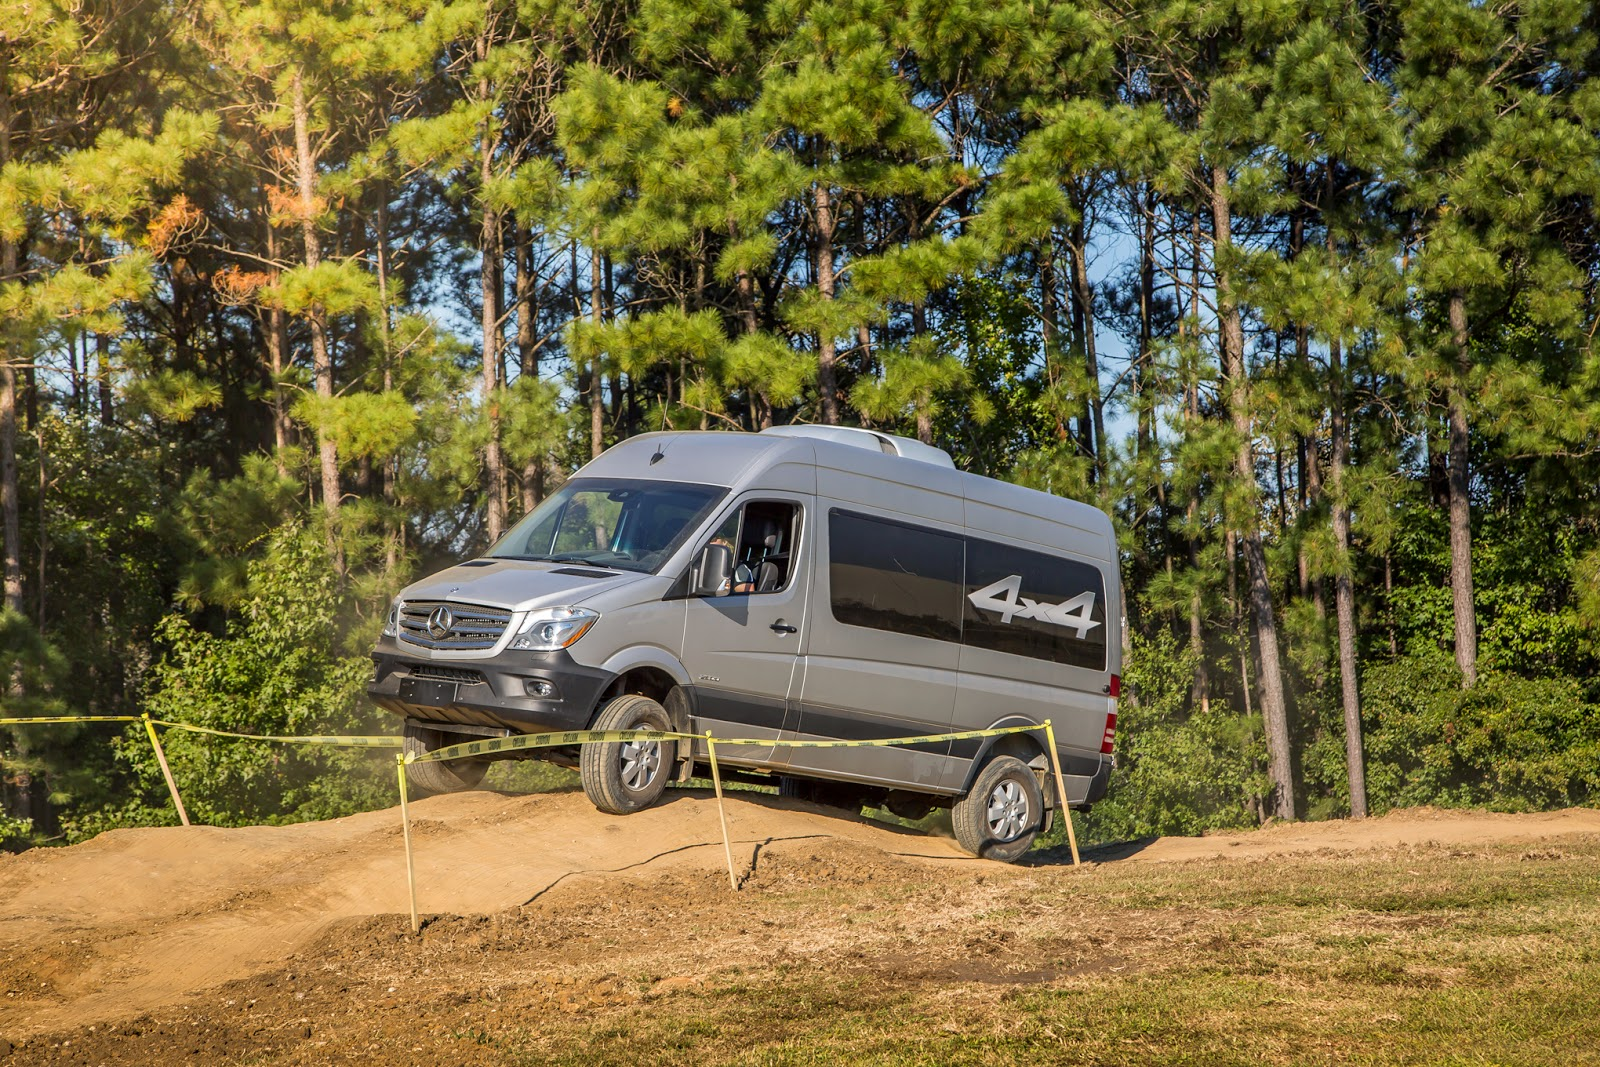 The 2015 MB Sprinter 4x4 On Factory Proving Grounds